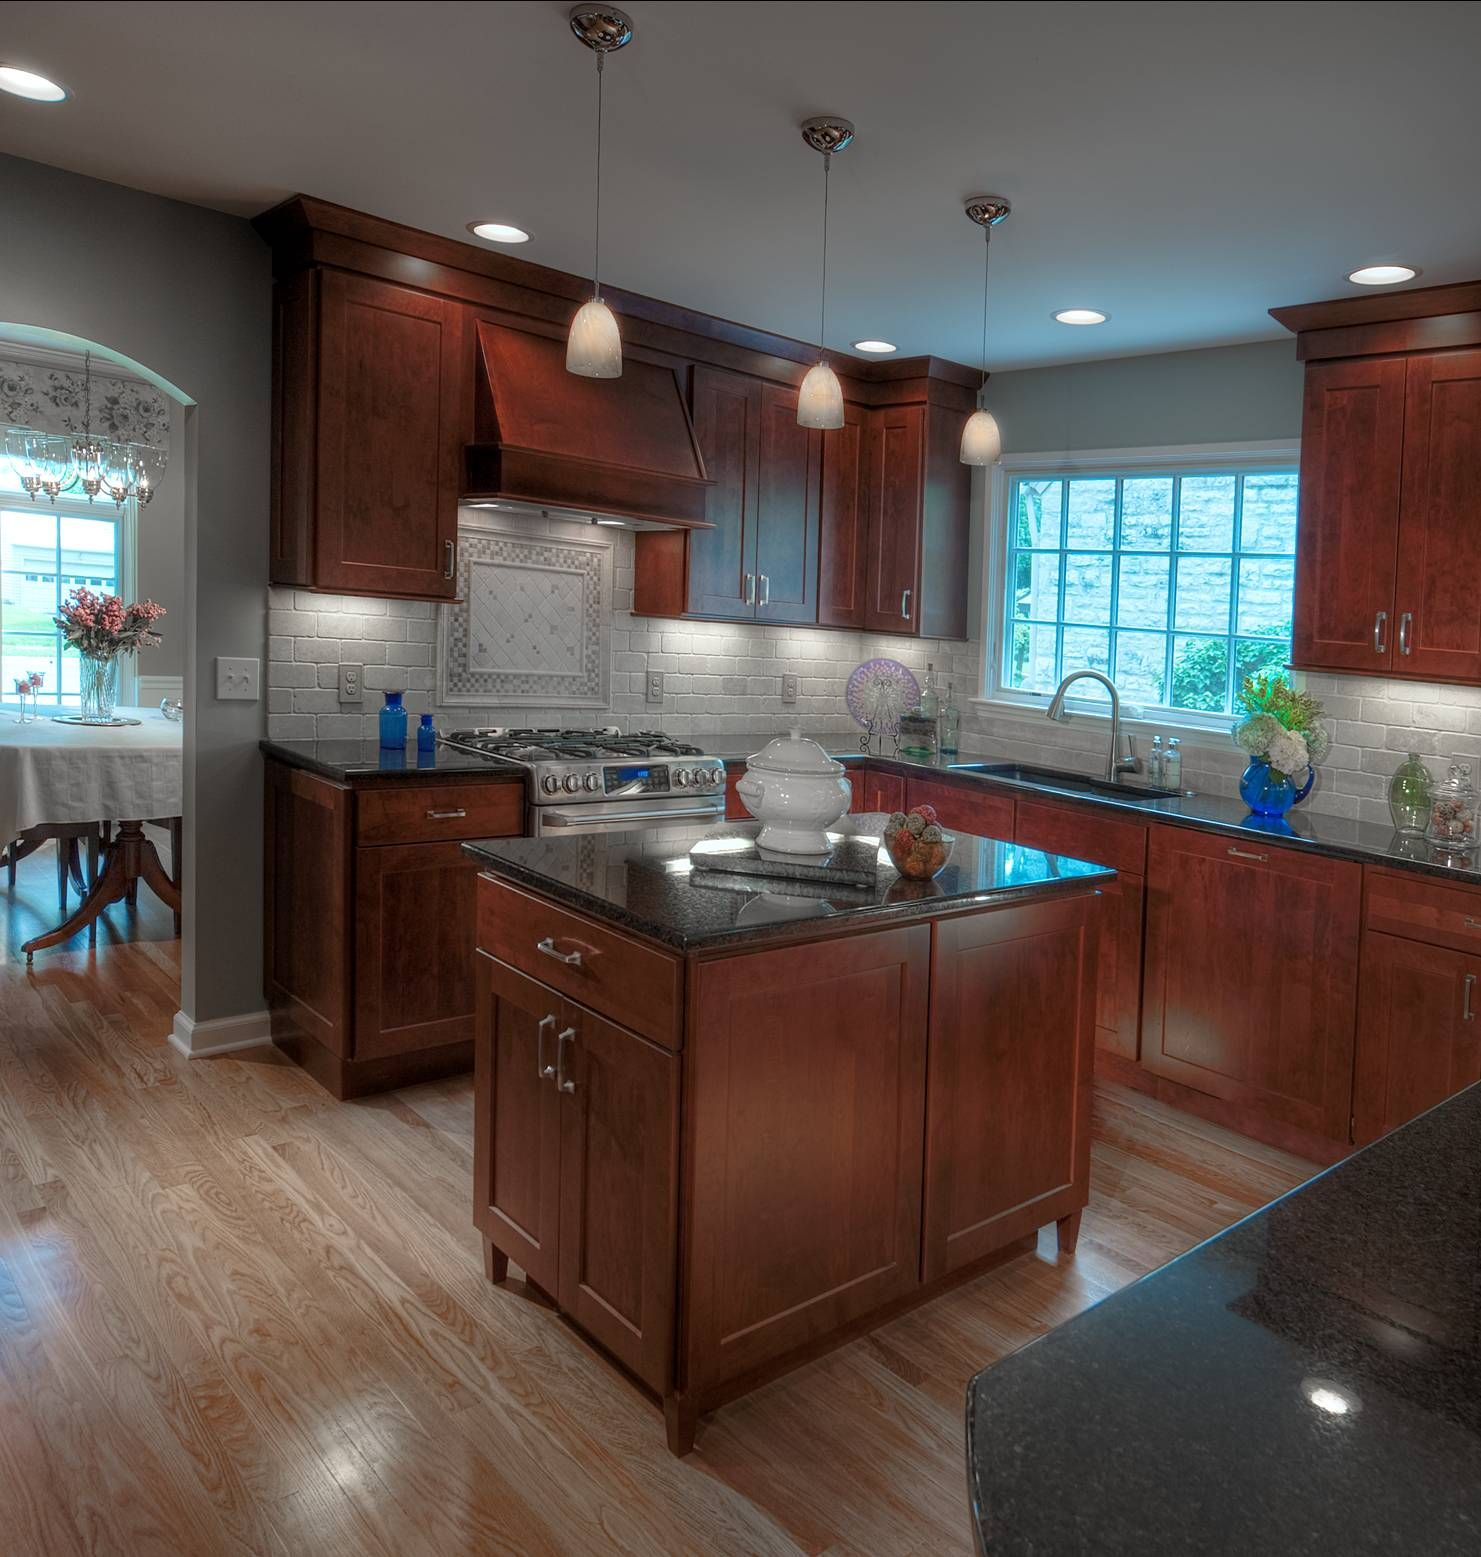 Maple Kitchen Countertops: Dark Maple Cabinets, Black Granite Tops And Travertine